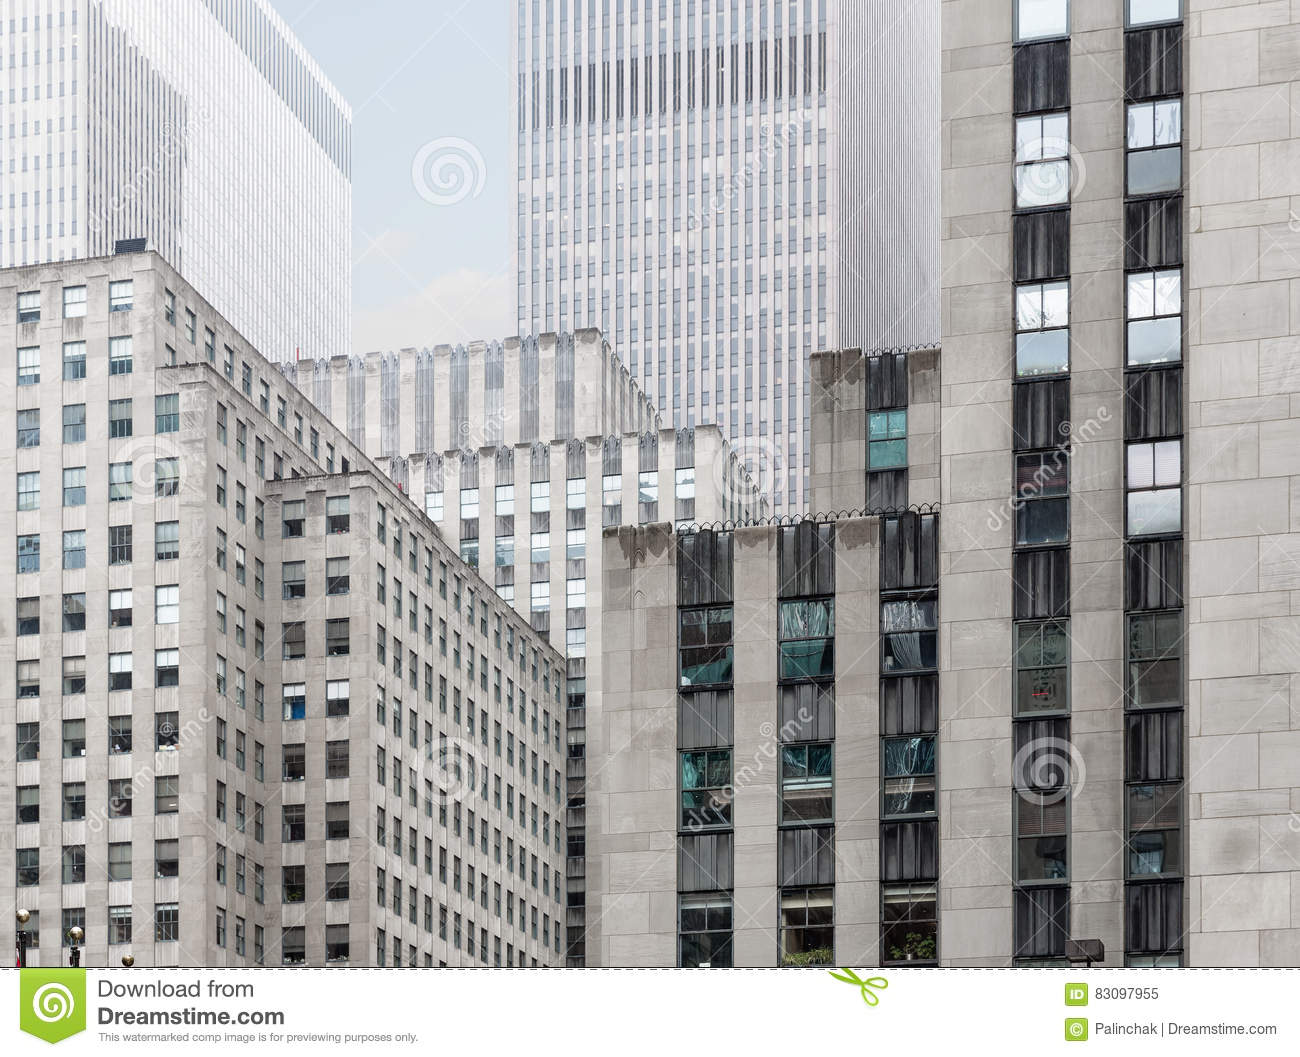 Cucina Restaurant Rockefeller Center Rockefeller Center In Nyc Editorial Image Image Of Reflect